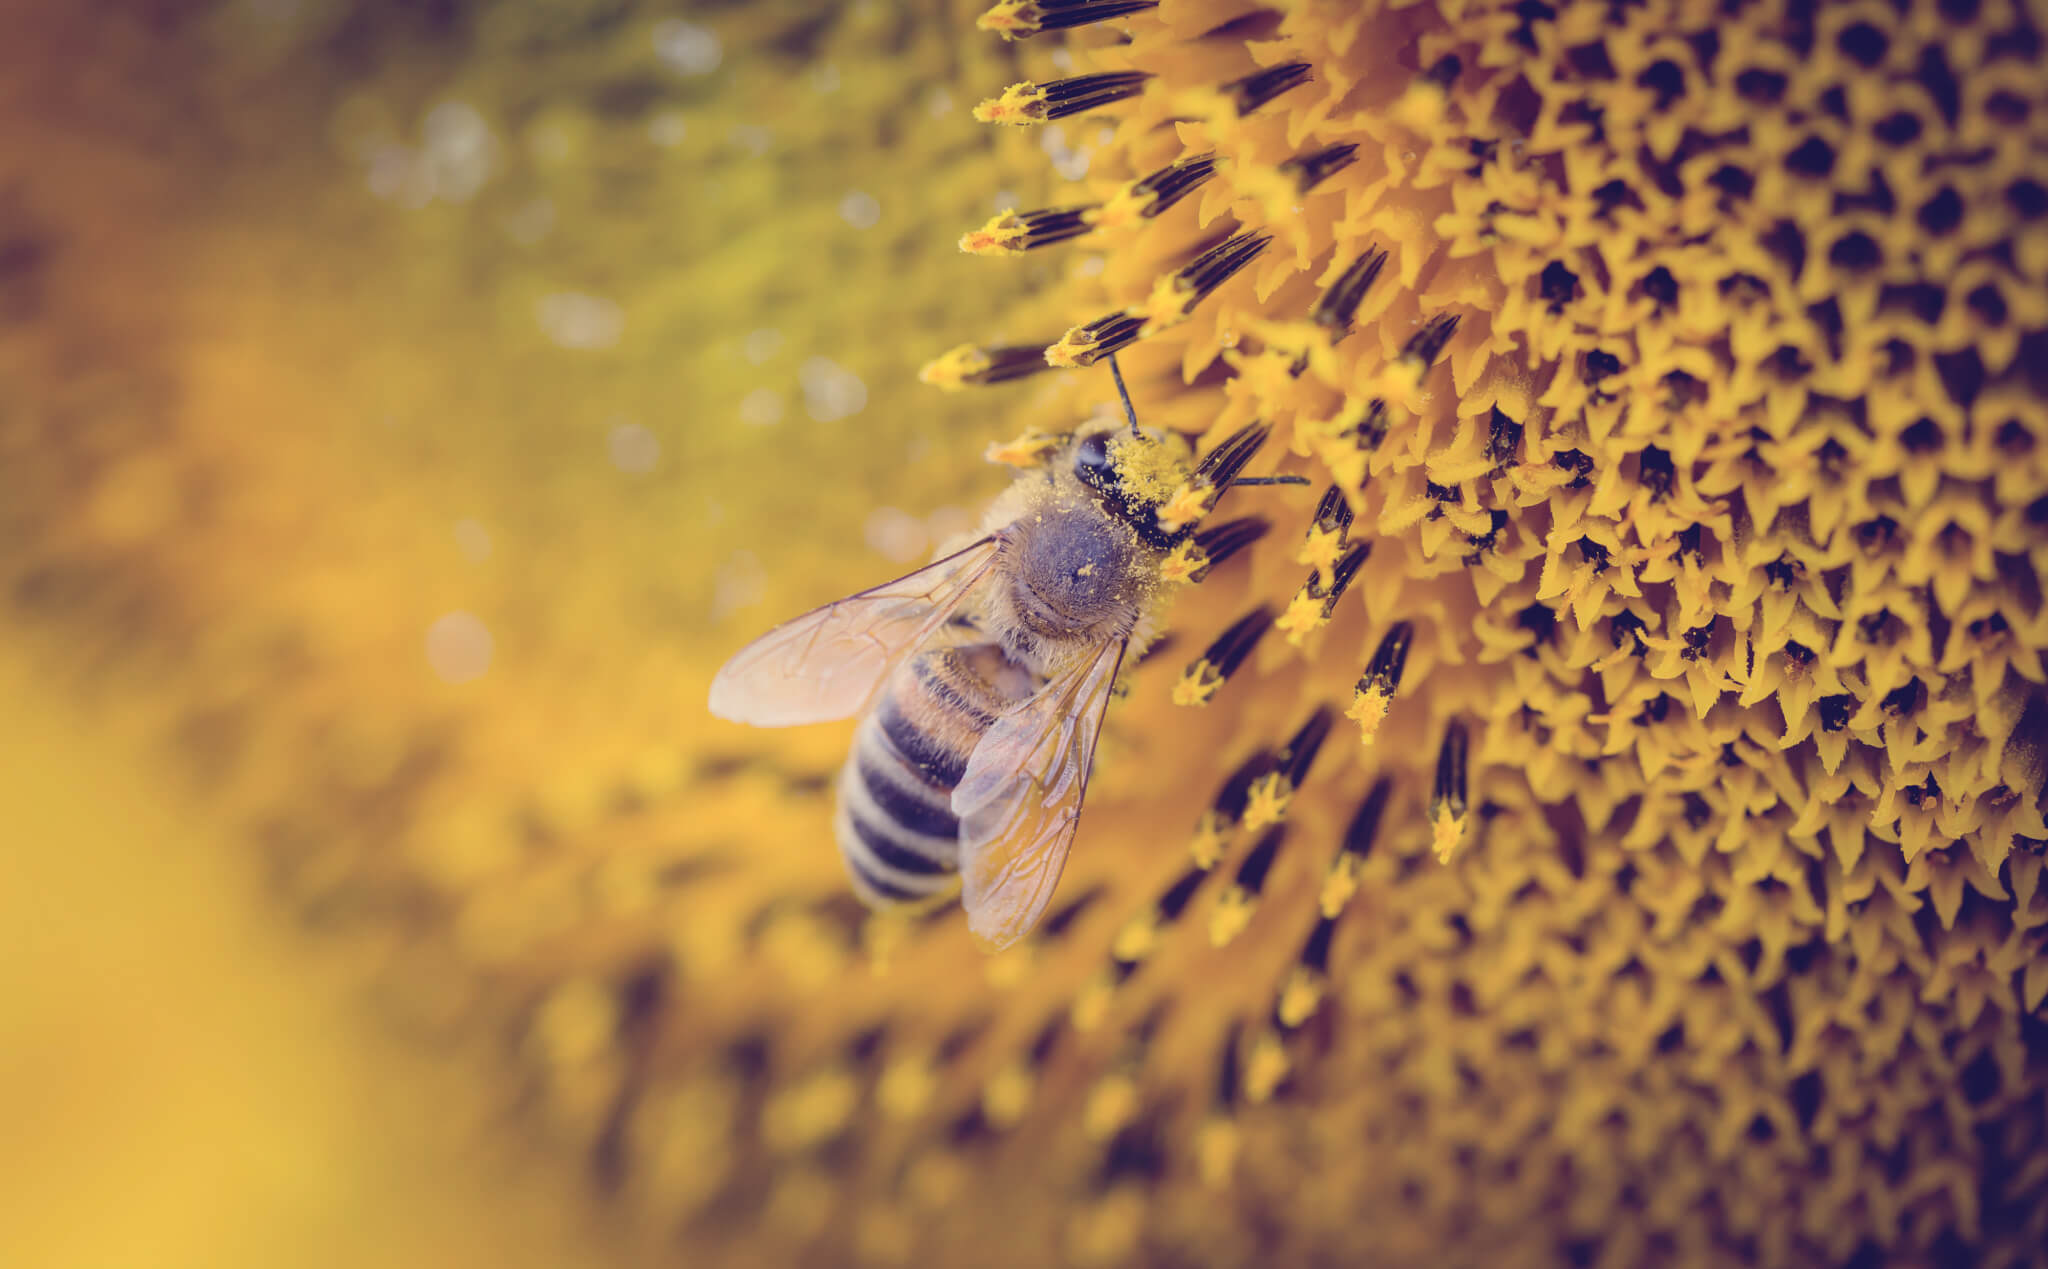 Bee pollinating flower, balance of ecology